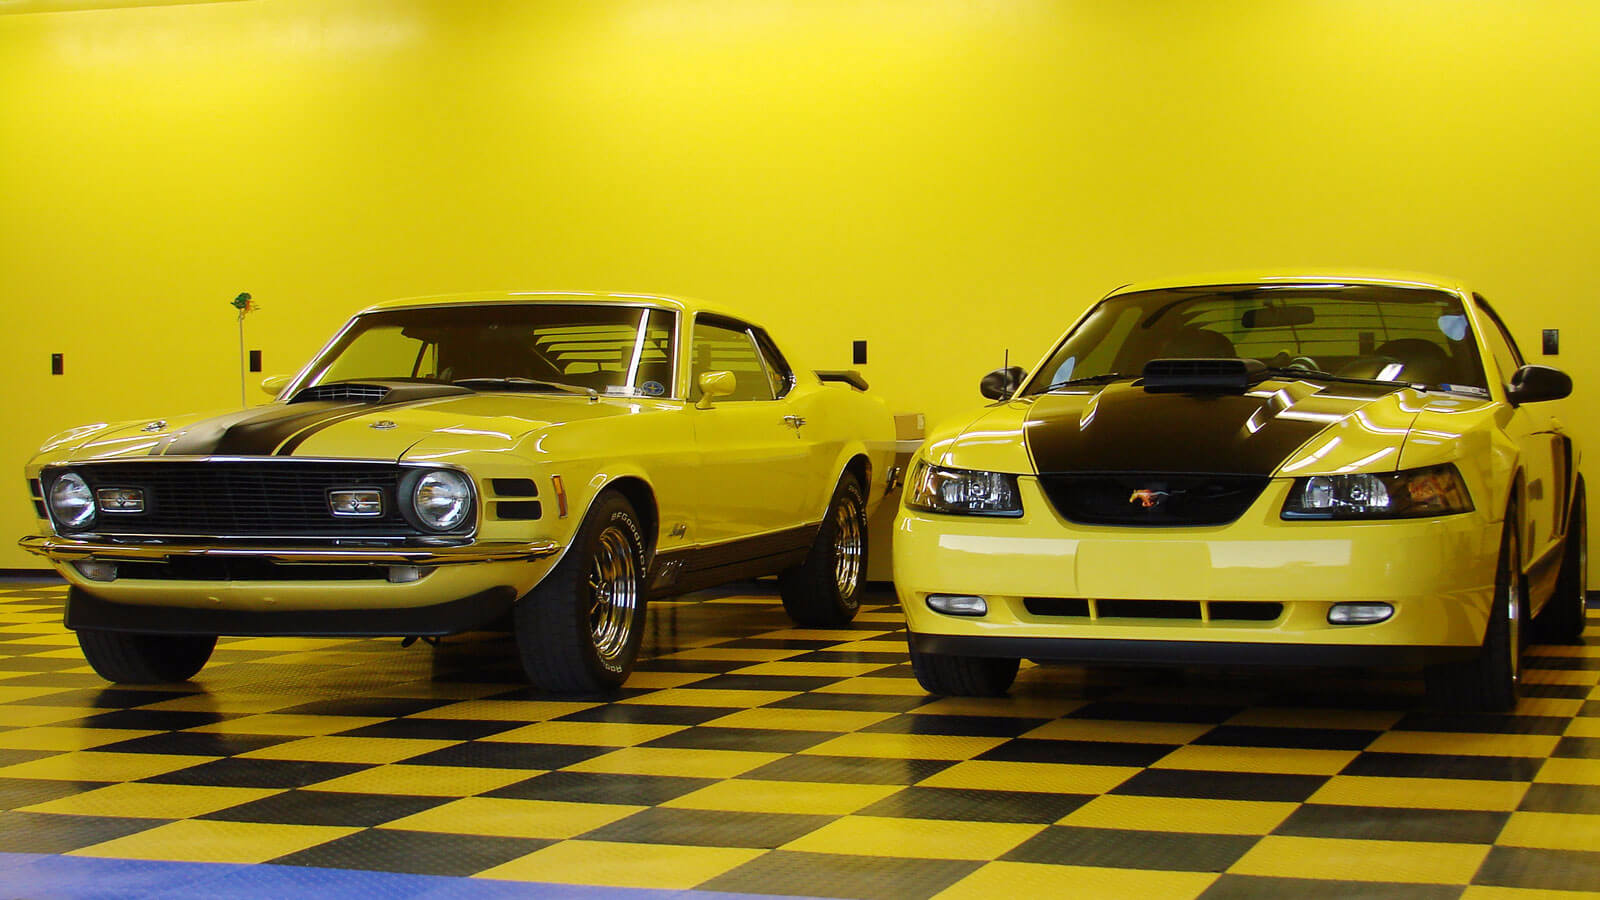 Yellow garage with new and old Mustangs